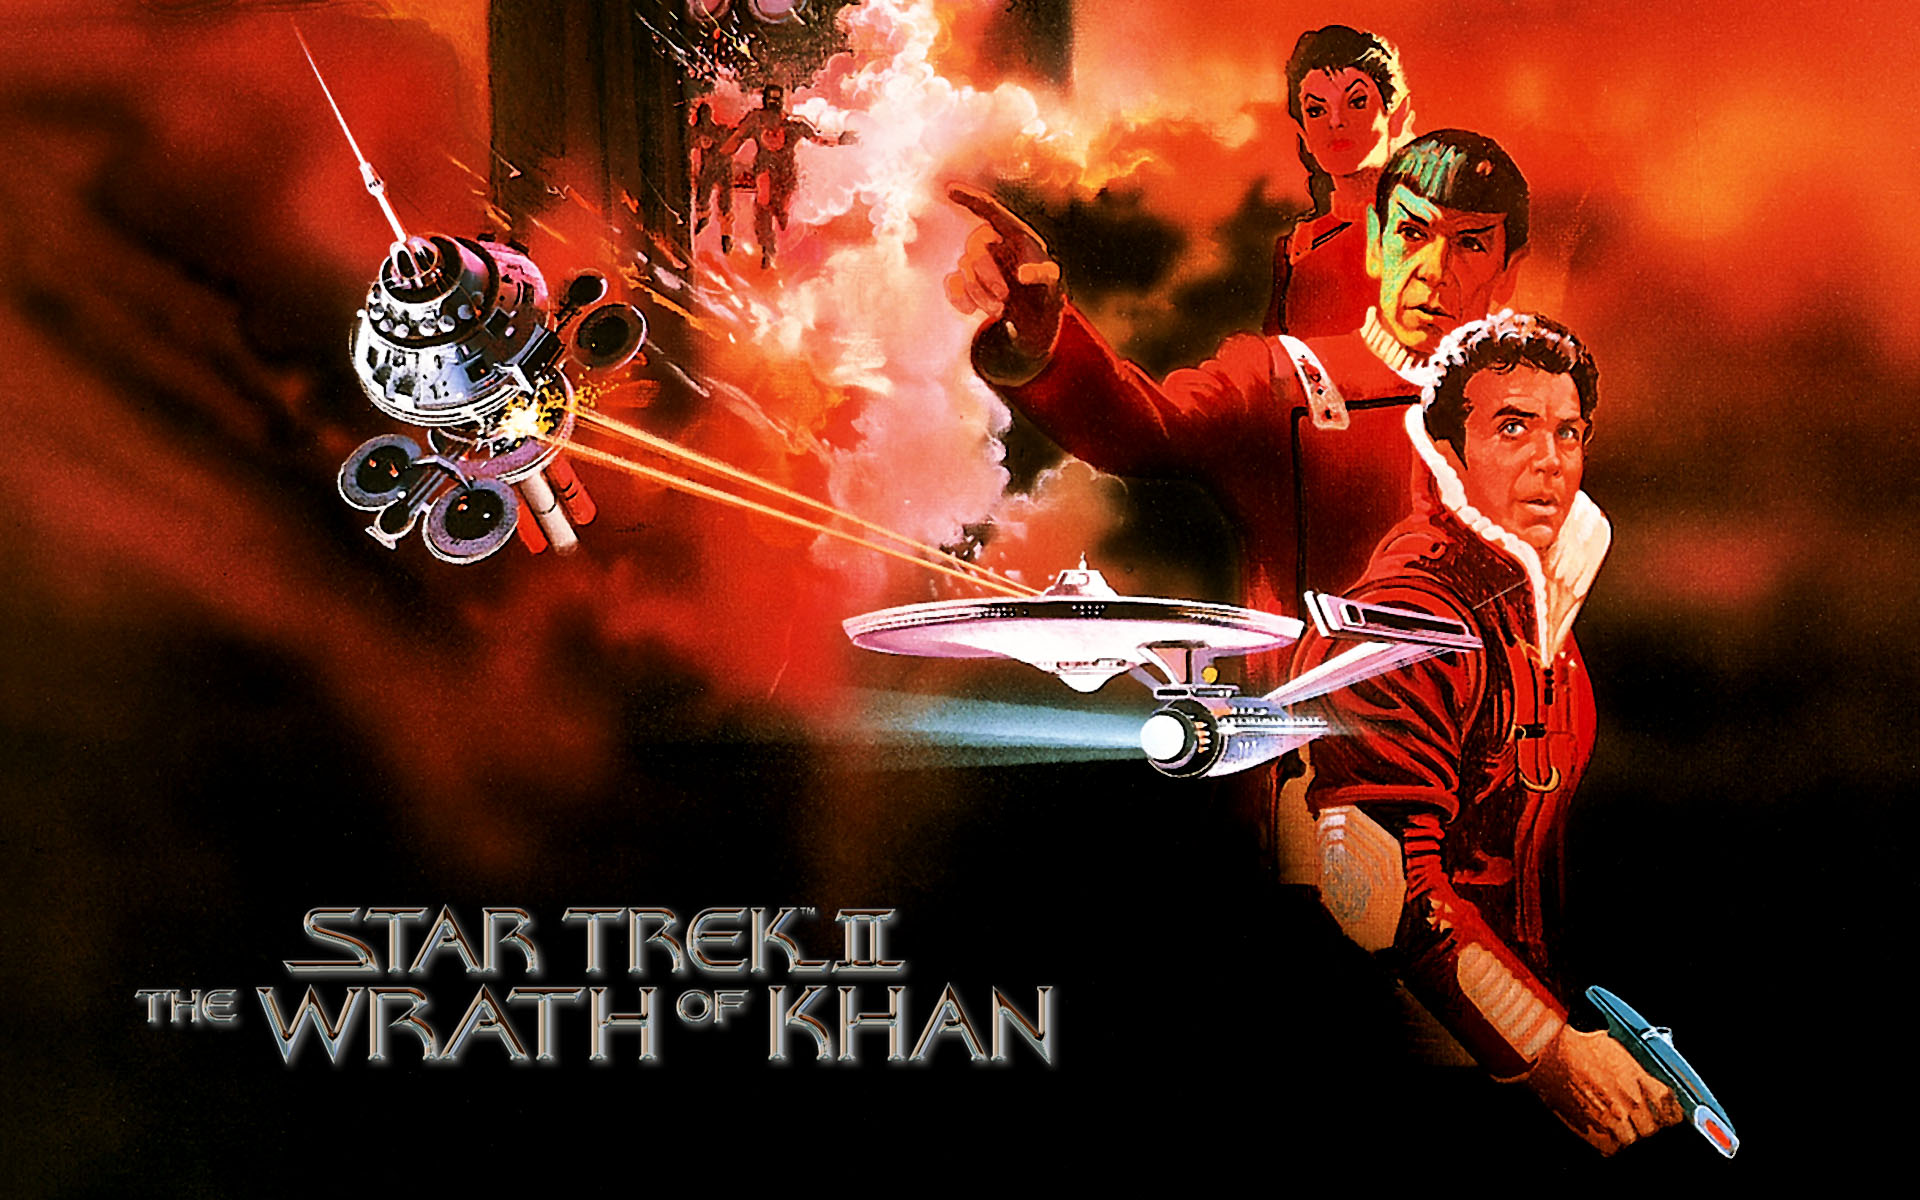 Star Trek II: The Wrath Of Khan Reminds Us That Revenge Is A Dish Best Served Cold